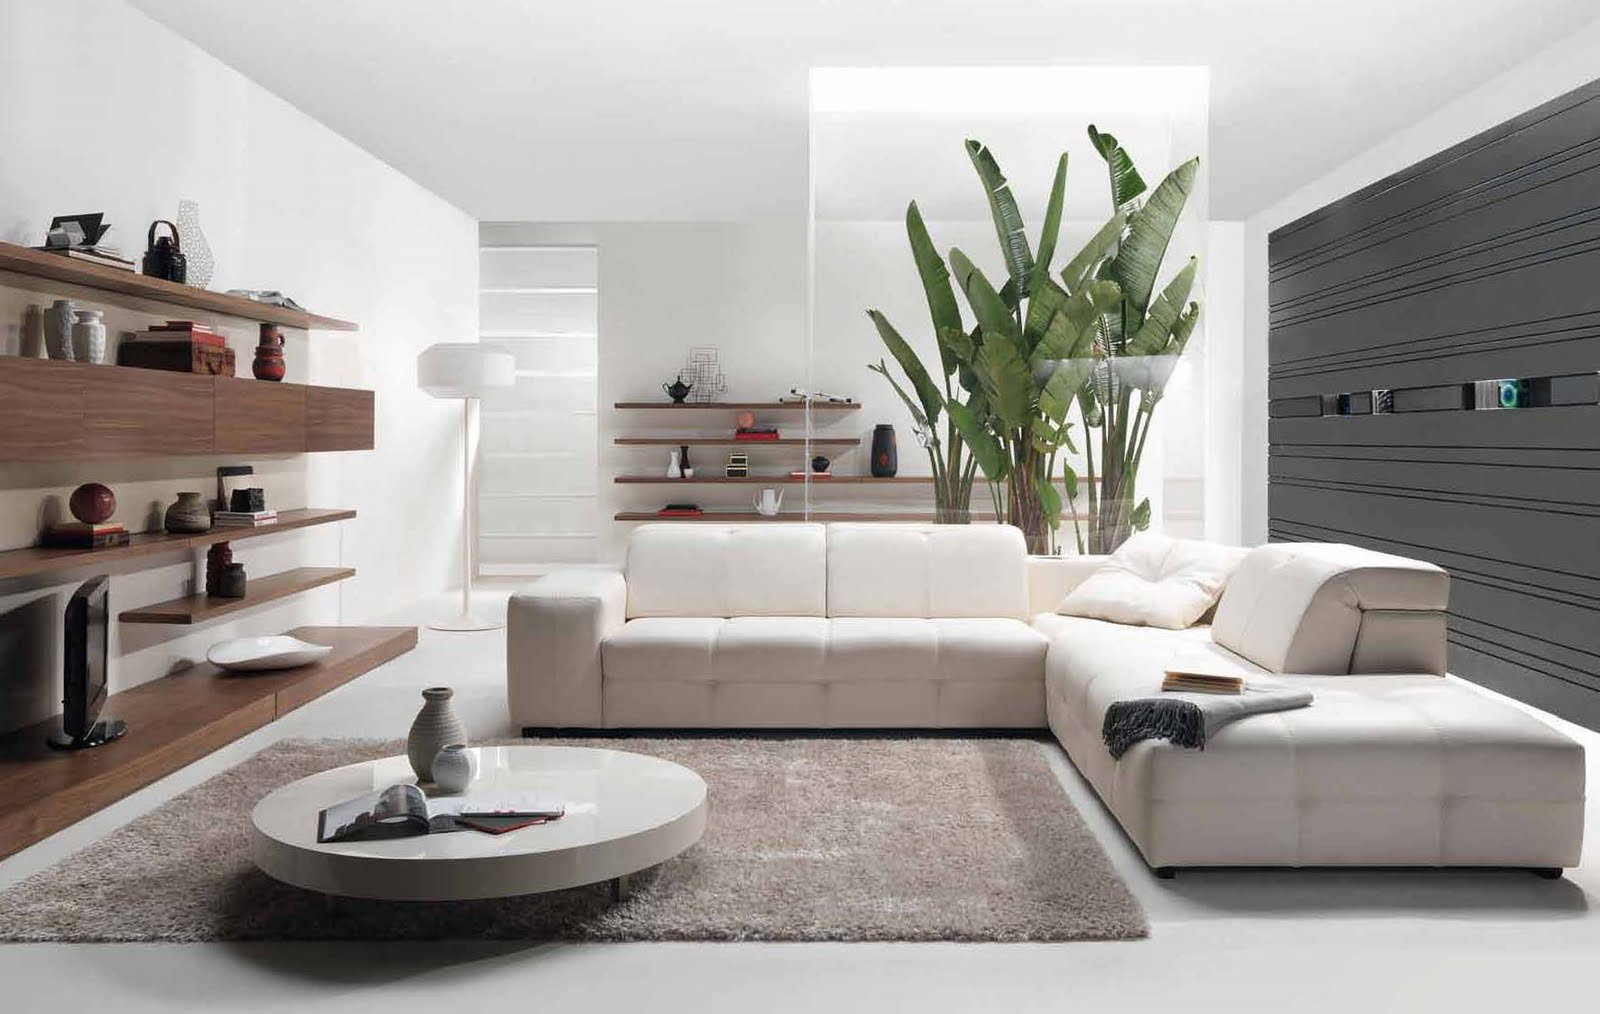 Modern Home, Interior & Furniture Designs & DIY Ideas ...